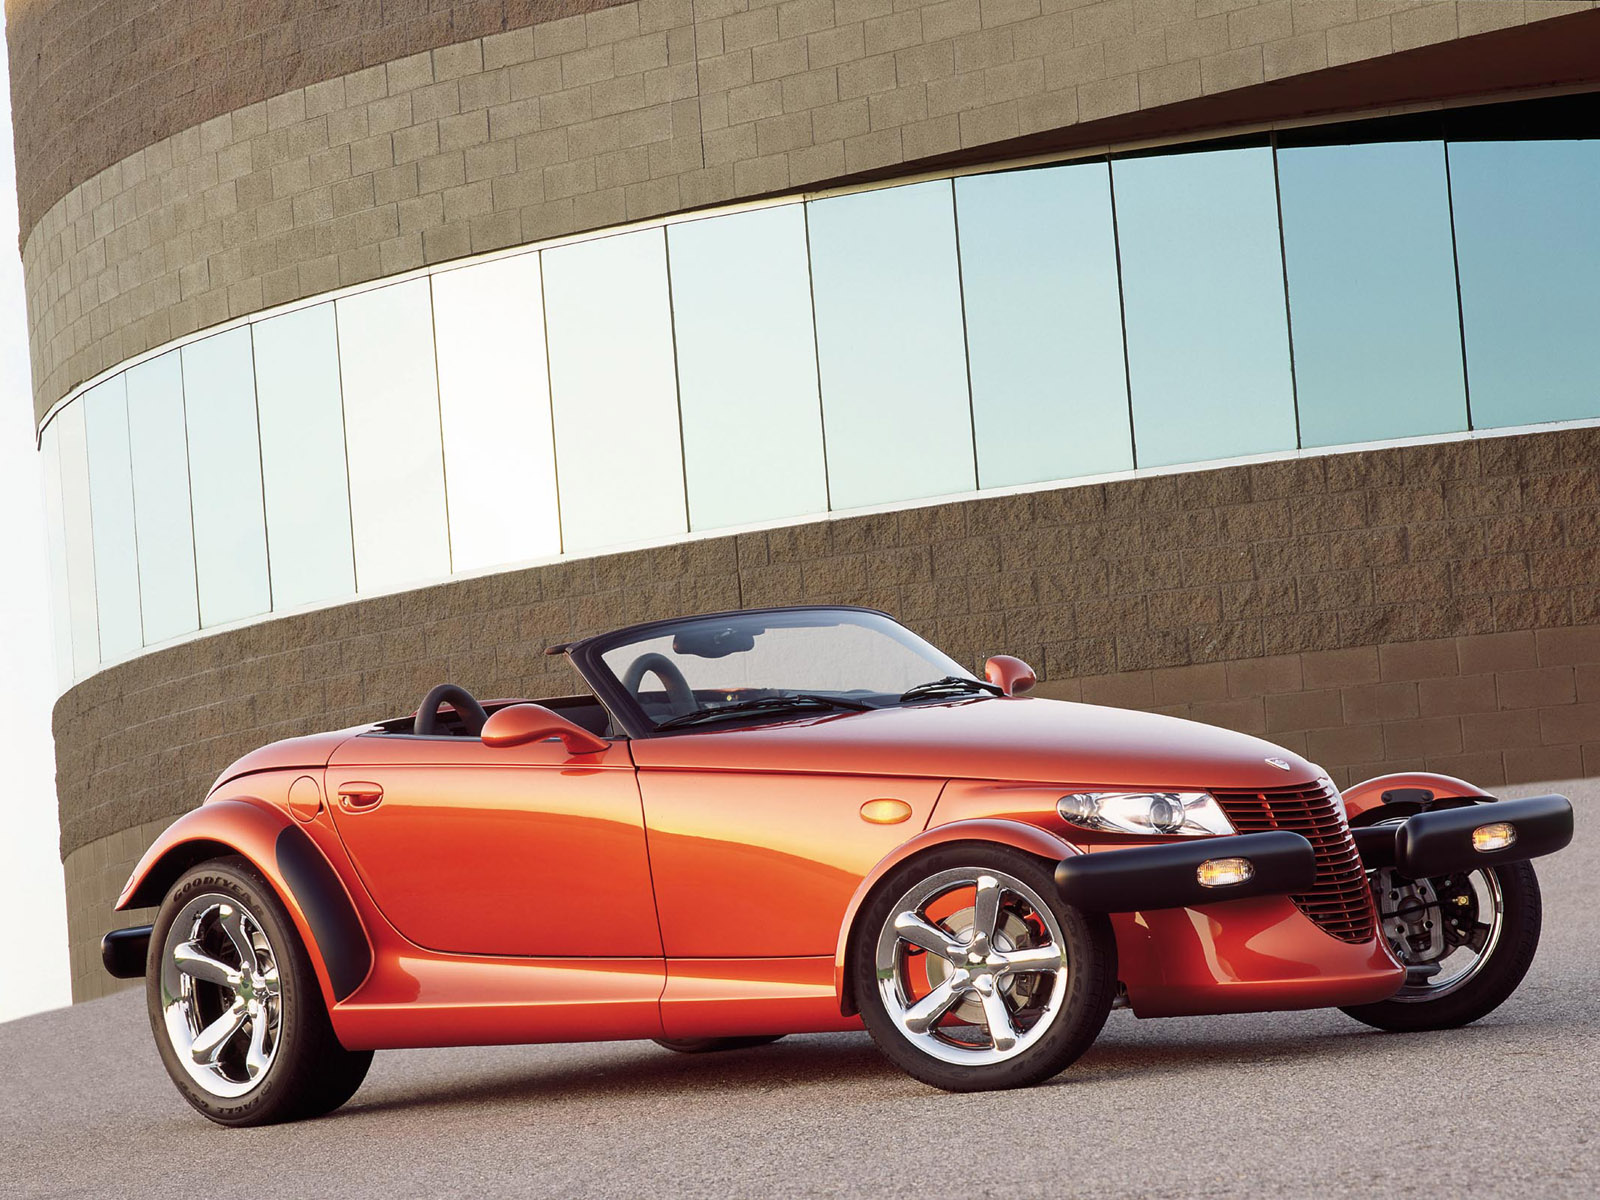 2001 Plymouth Prowler. (P-0101)